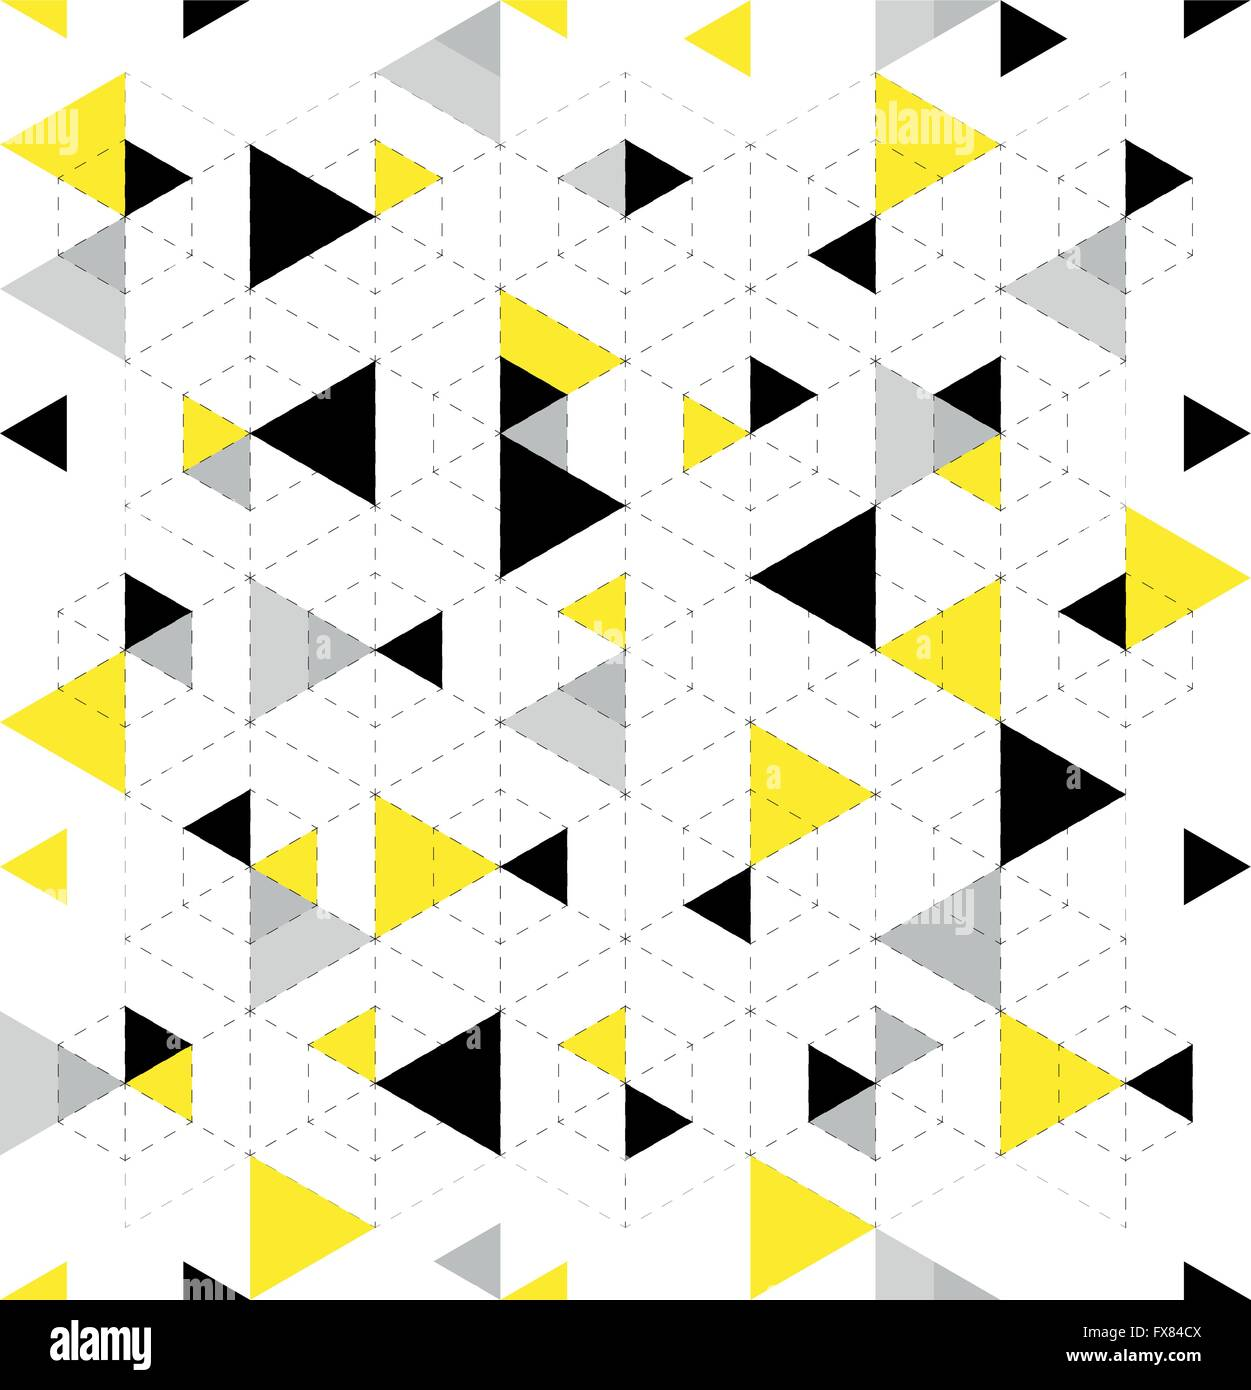 Seamless Geometric Triangle Pattern. Abstract geometric background design. Vector illustration. - Stock Image